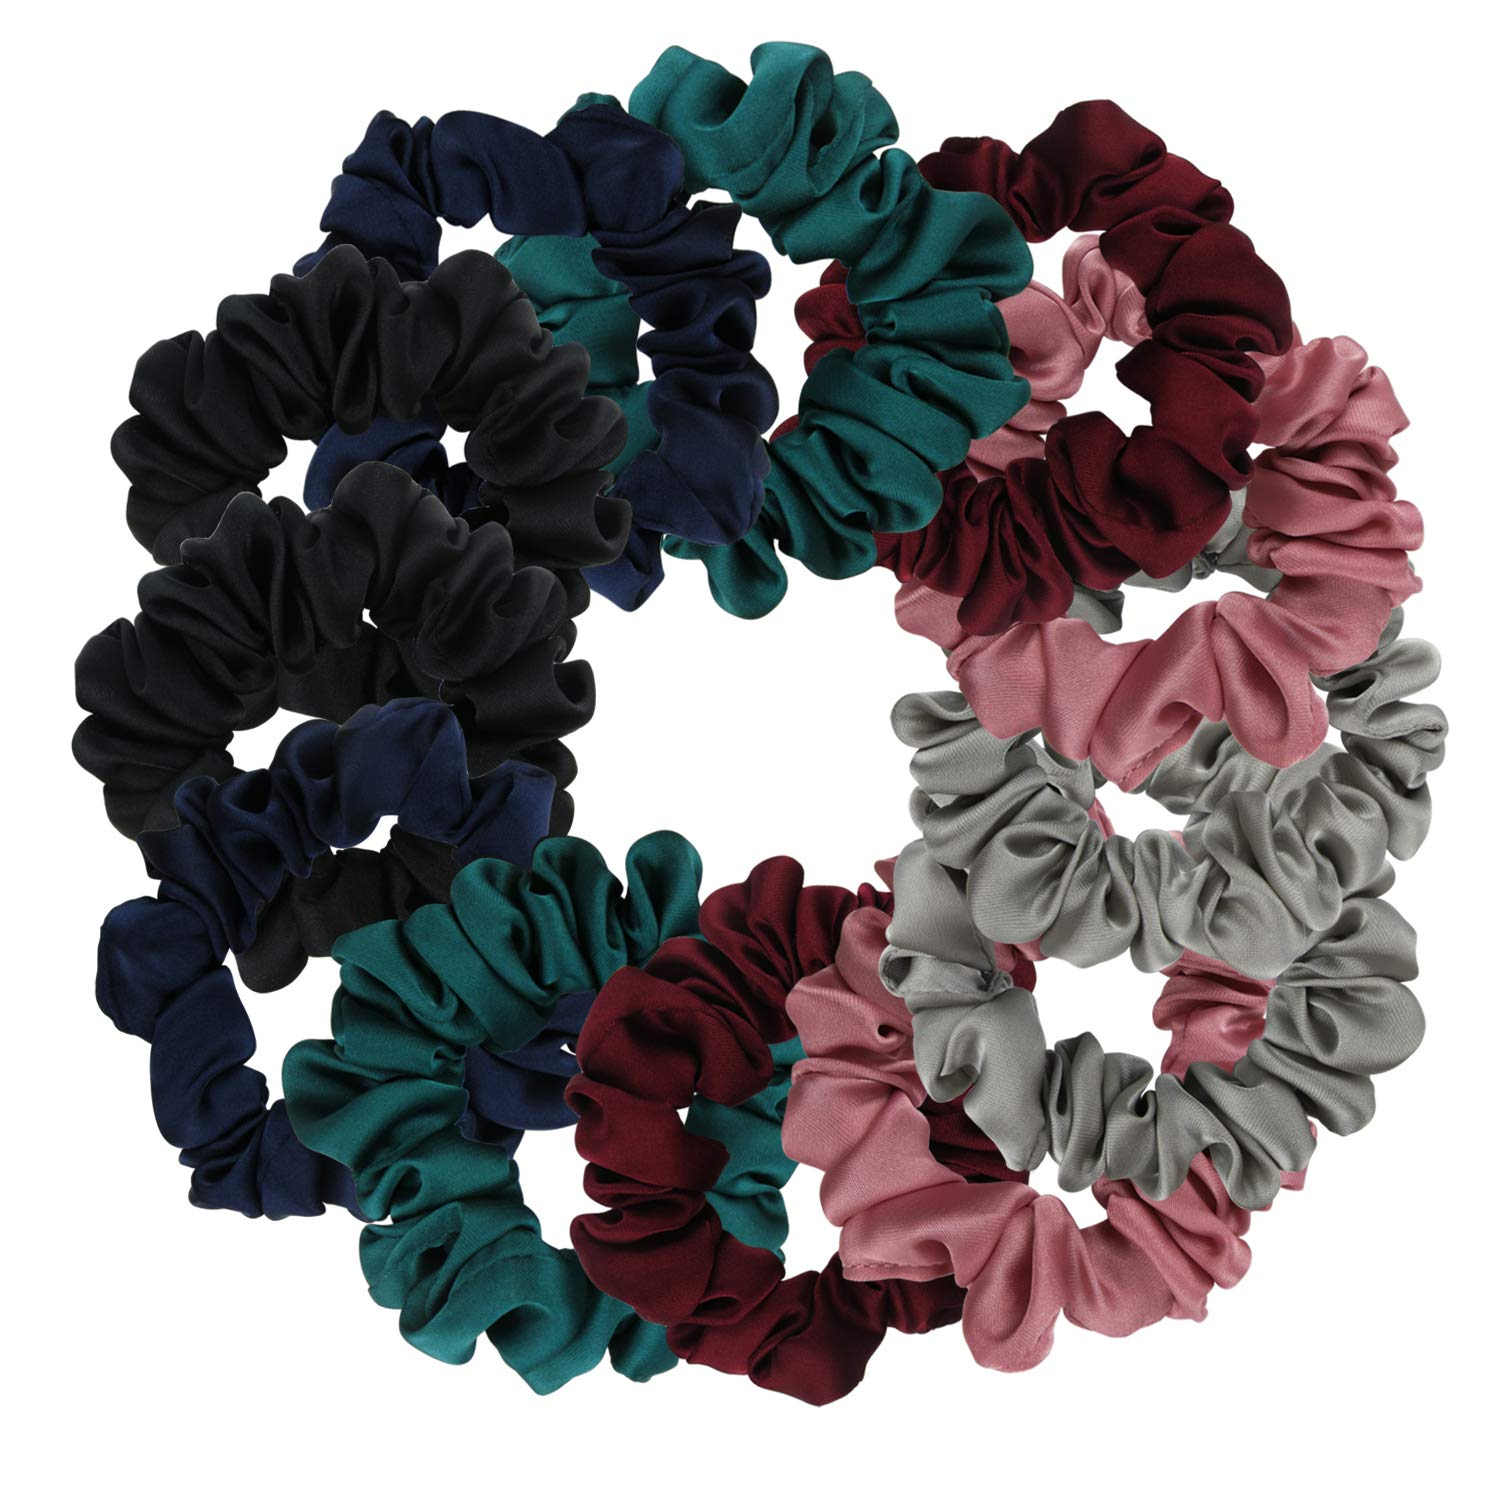 Satin Scrunchies, BETITETO Set of 12 Soft Ponytail Holder Bobbles Hair Scrunchy Vintage Hair Bands Ties for Women Girls